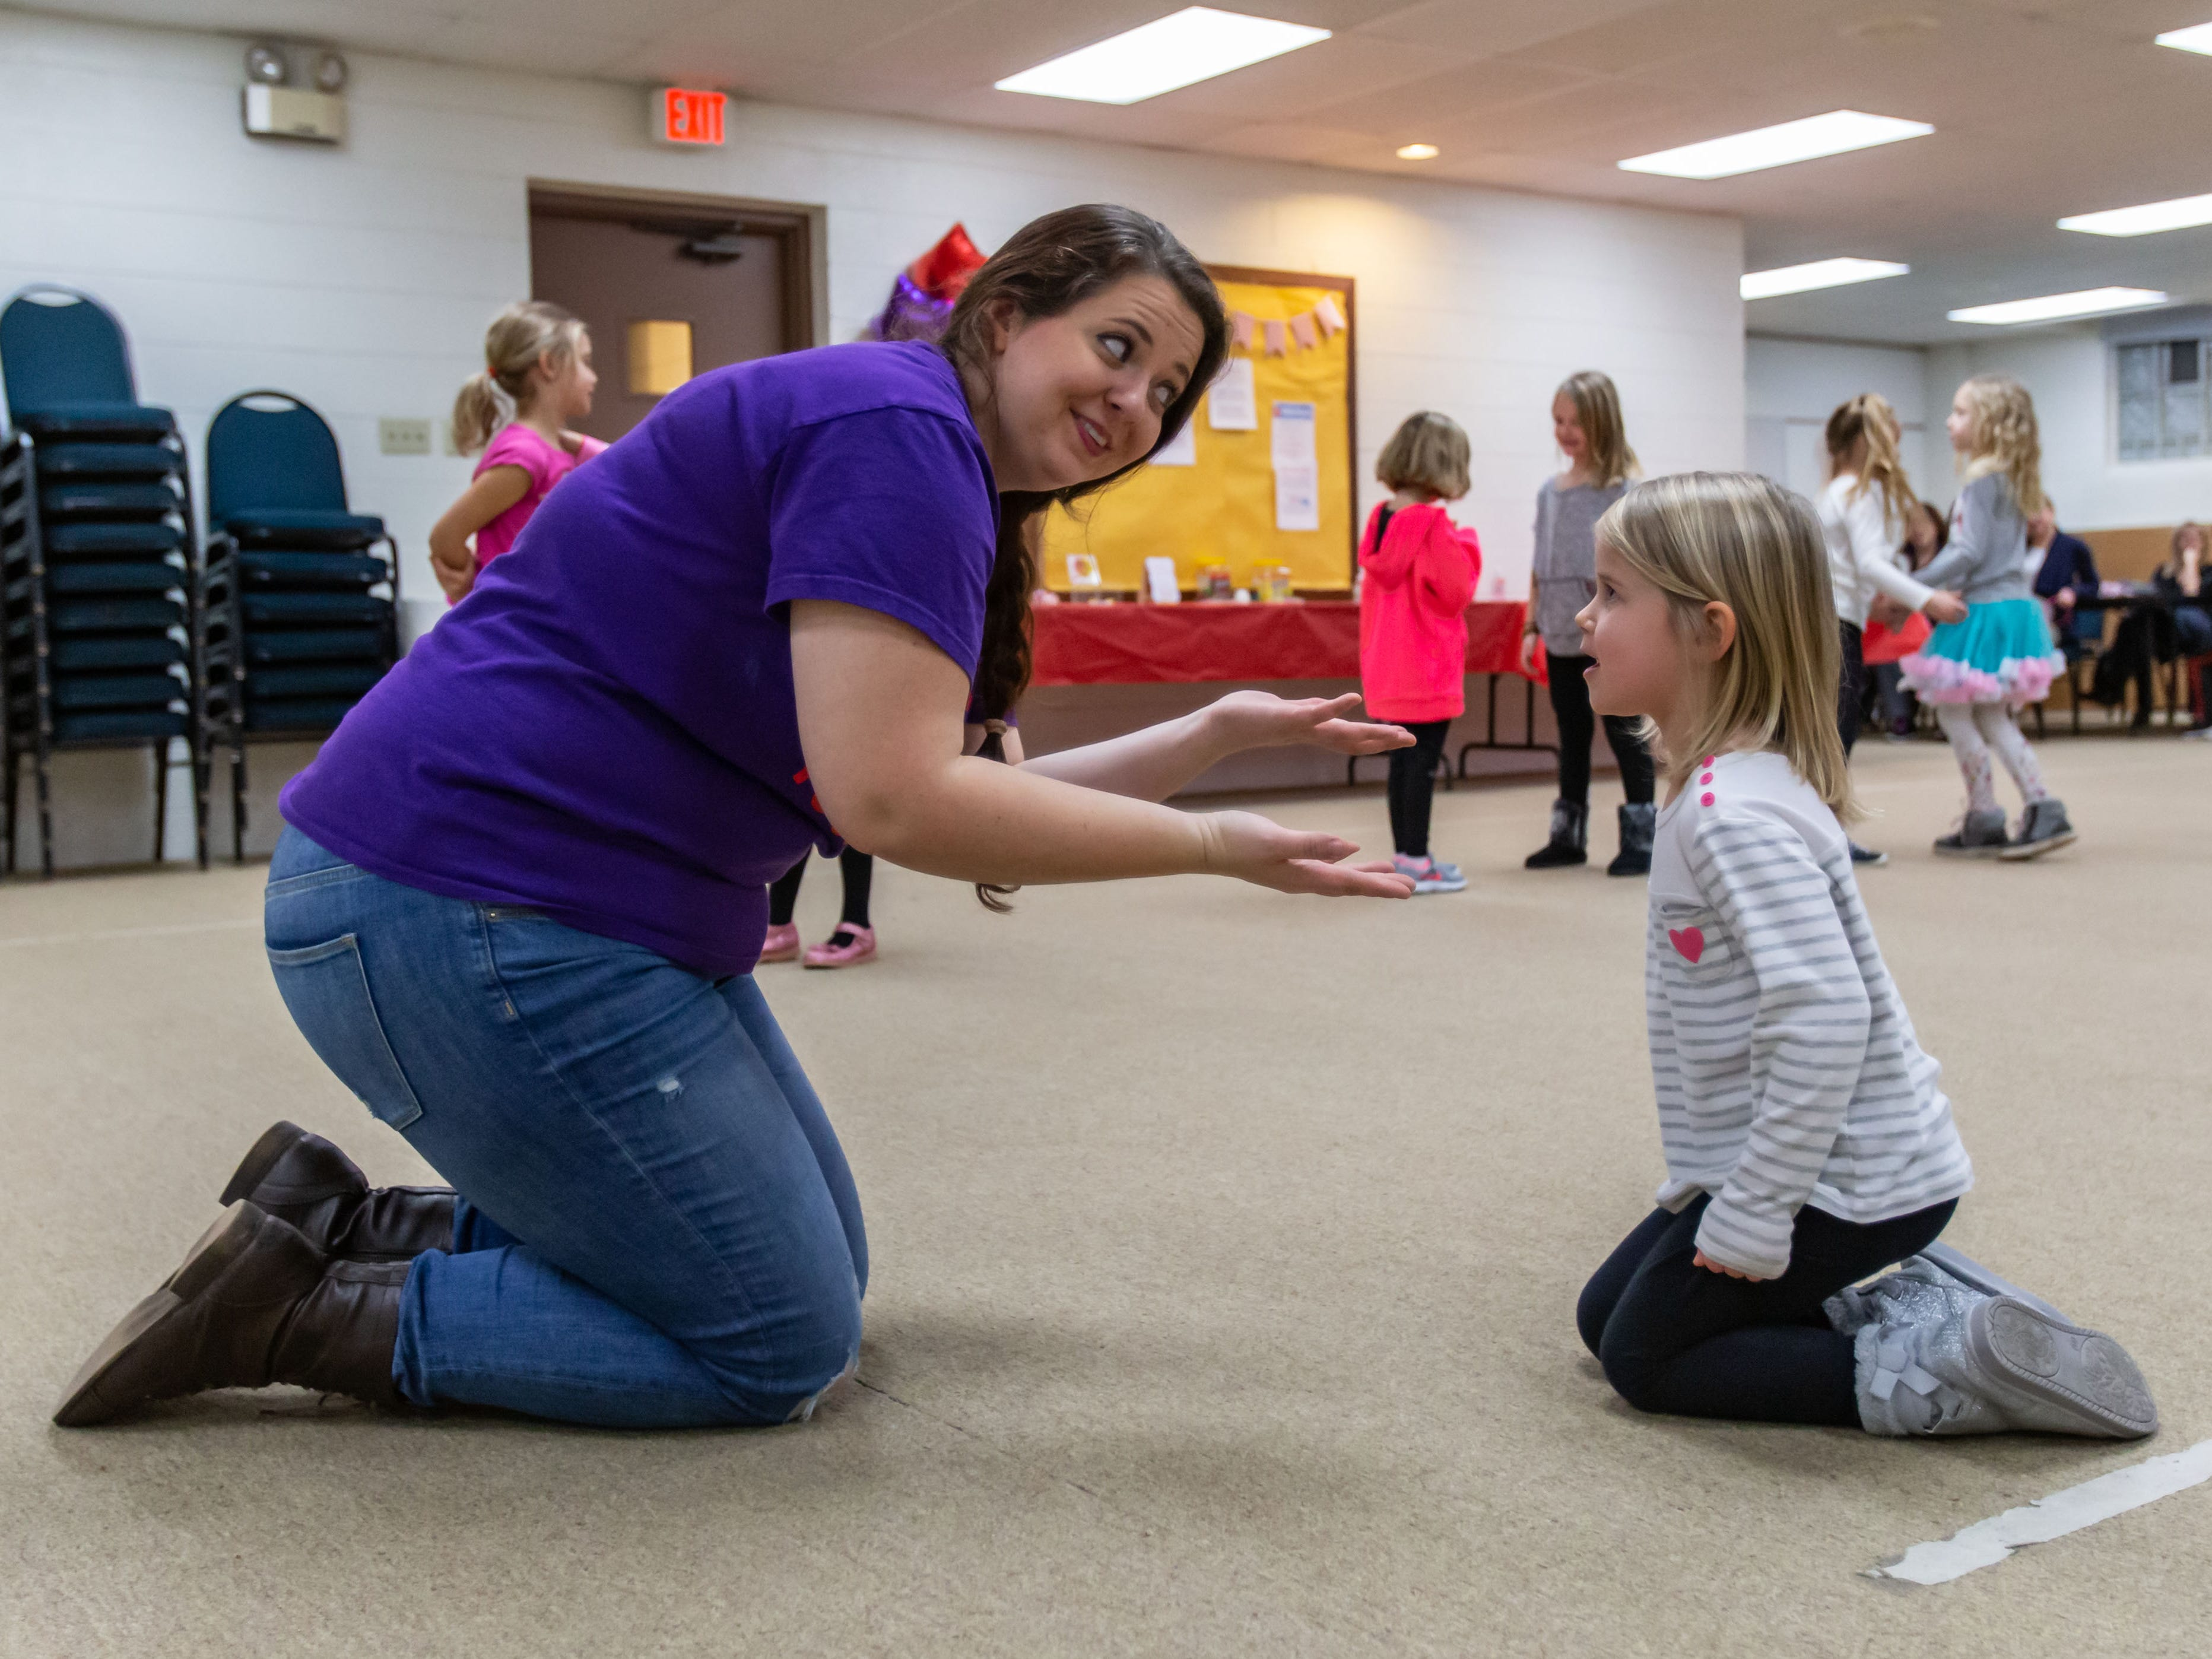 Lake Country Playhouse teaching artist Kathryn Mooers works with a youngster during a free, Open House theatre class in Hartland on Monday, Jan. 7, 2019. For more information visit LakeCountryPlayhouseWI.org.